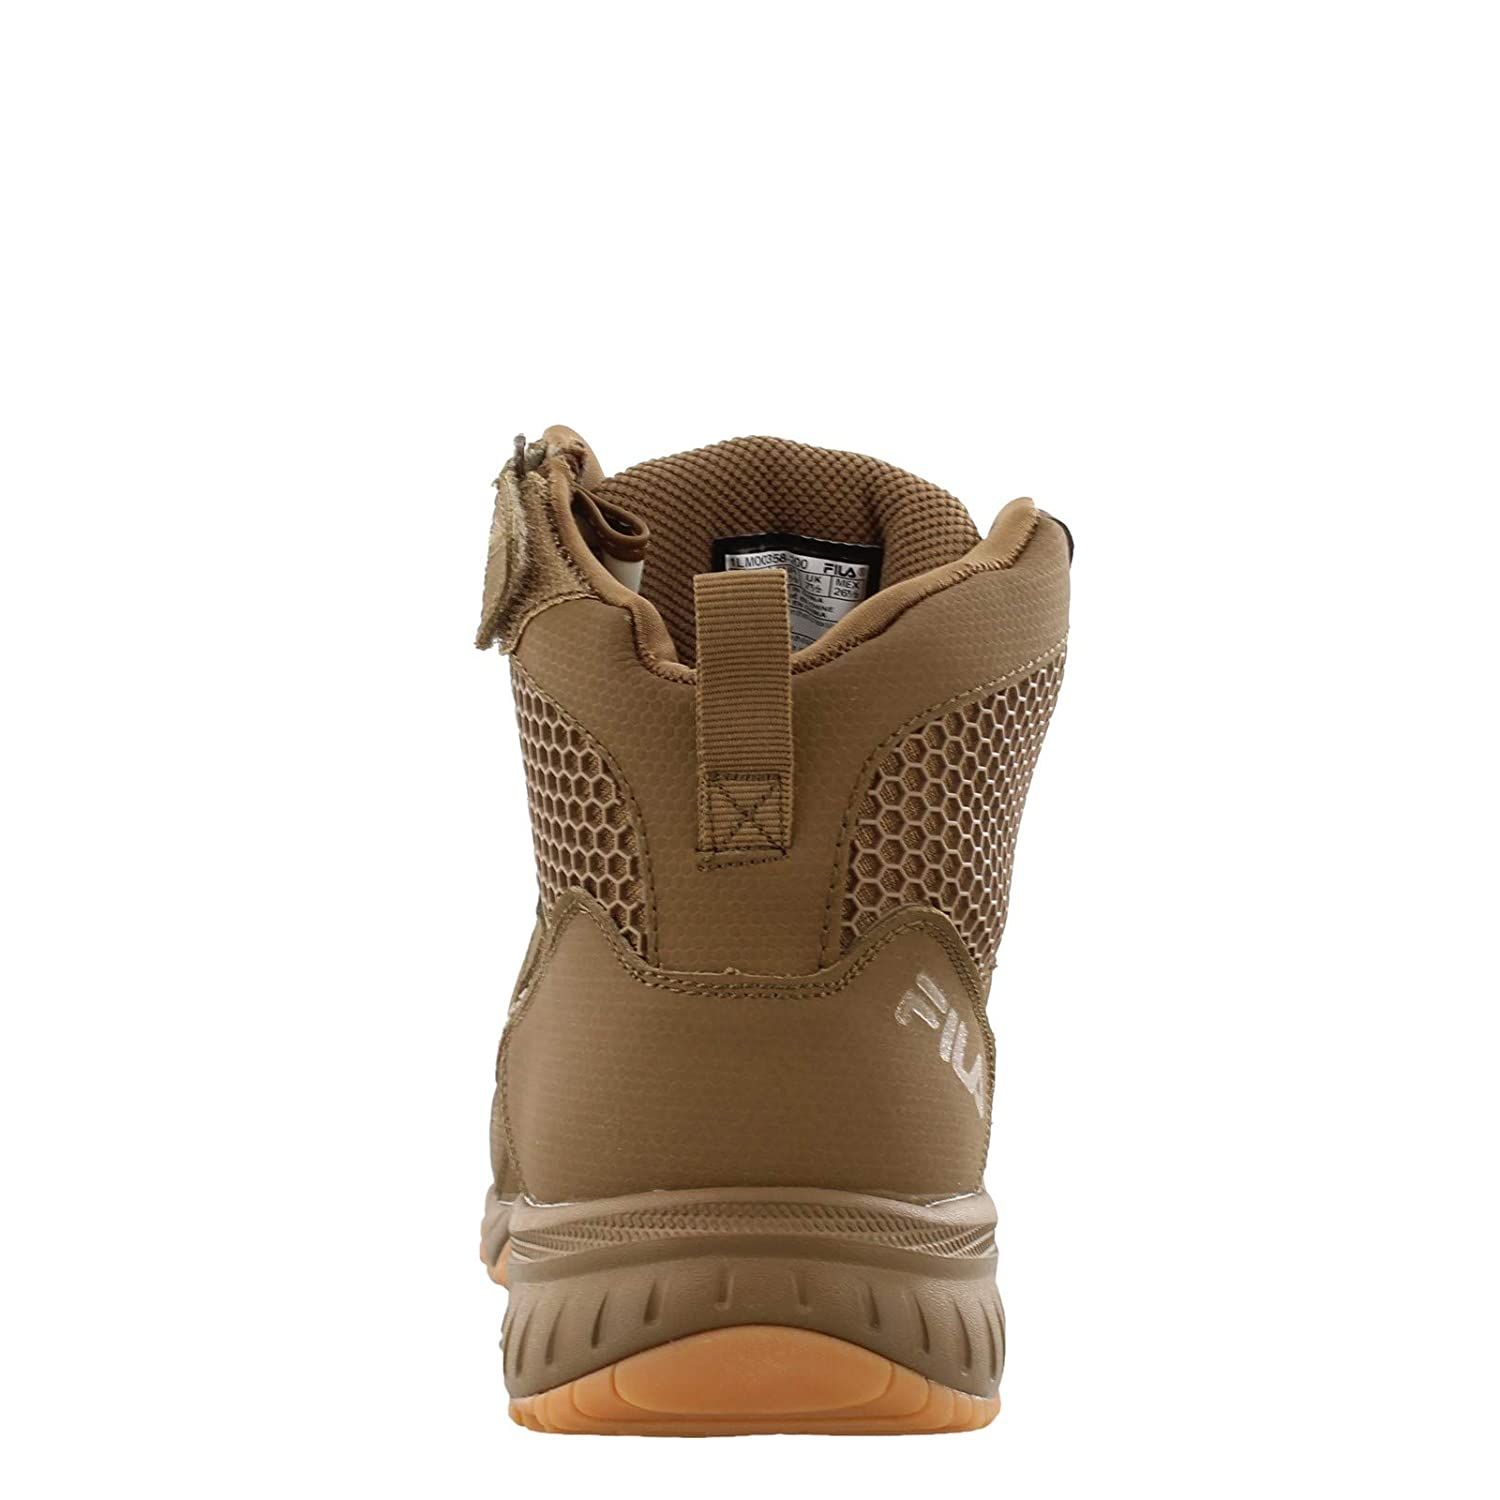 and Tactical Boot Food Service Shoe